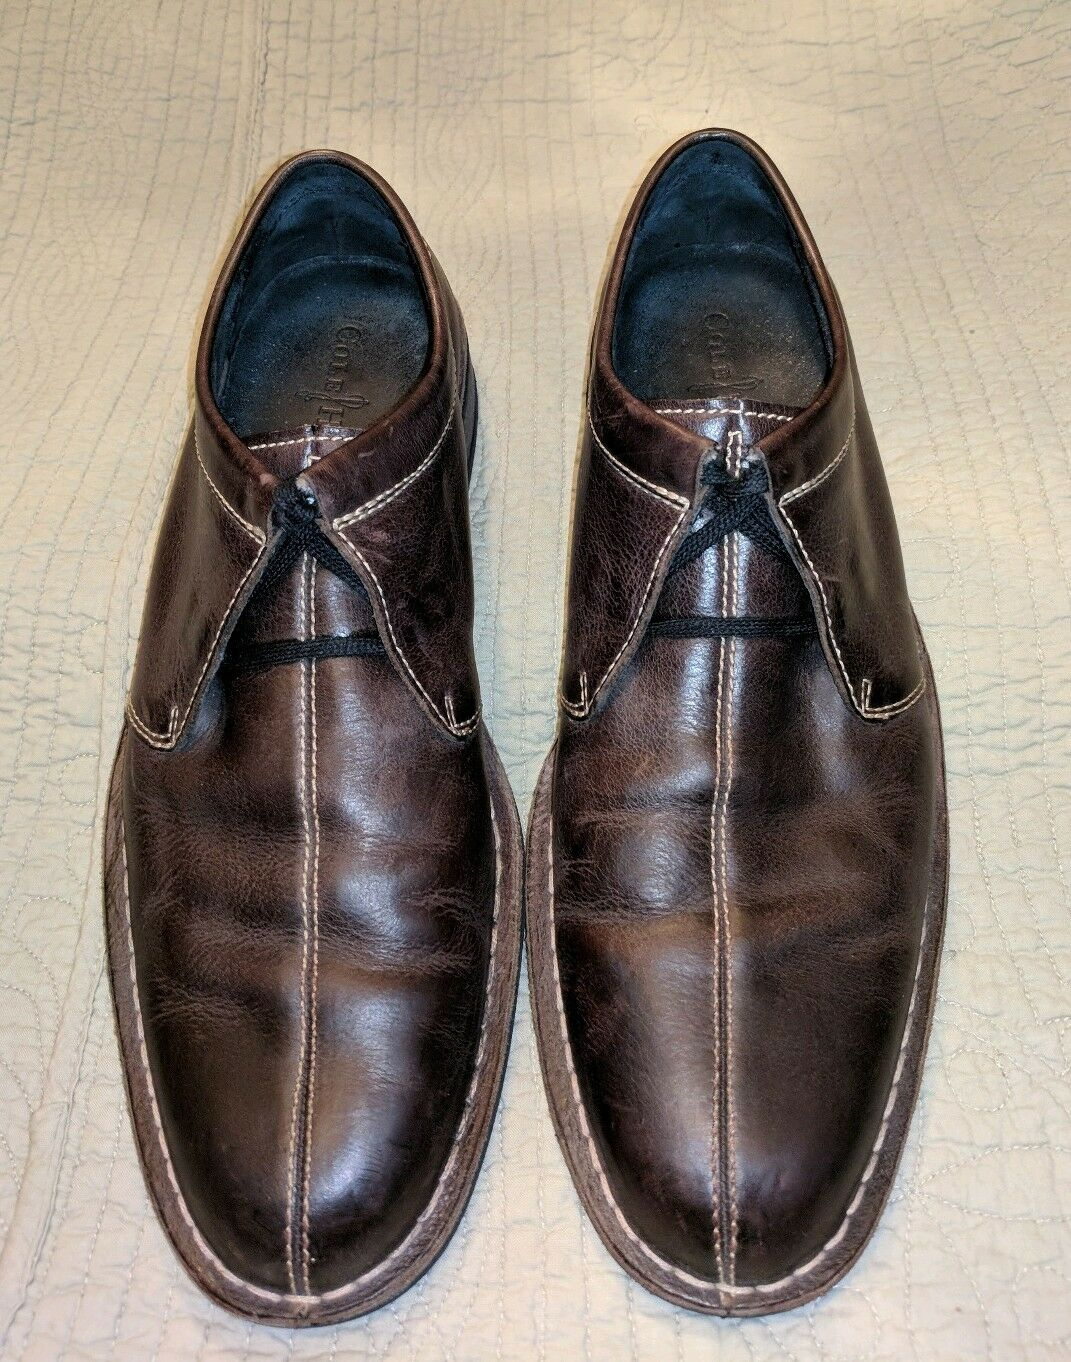 COLE HAAN DARK BROWN LEATHER SPLIT TOE OXFORDS SHOES 11 M MENS BROGUES